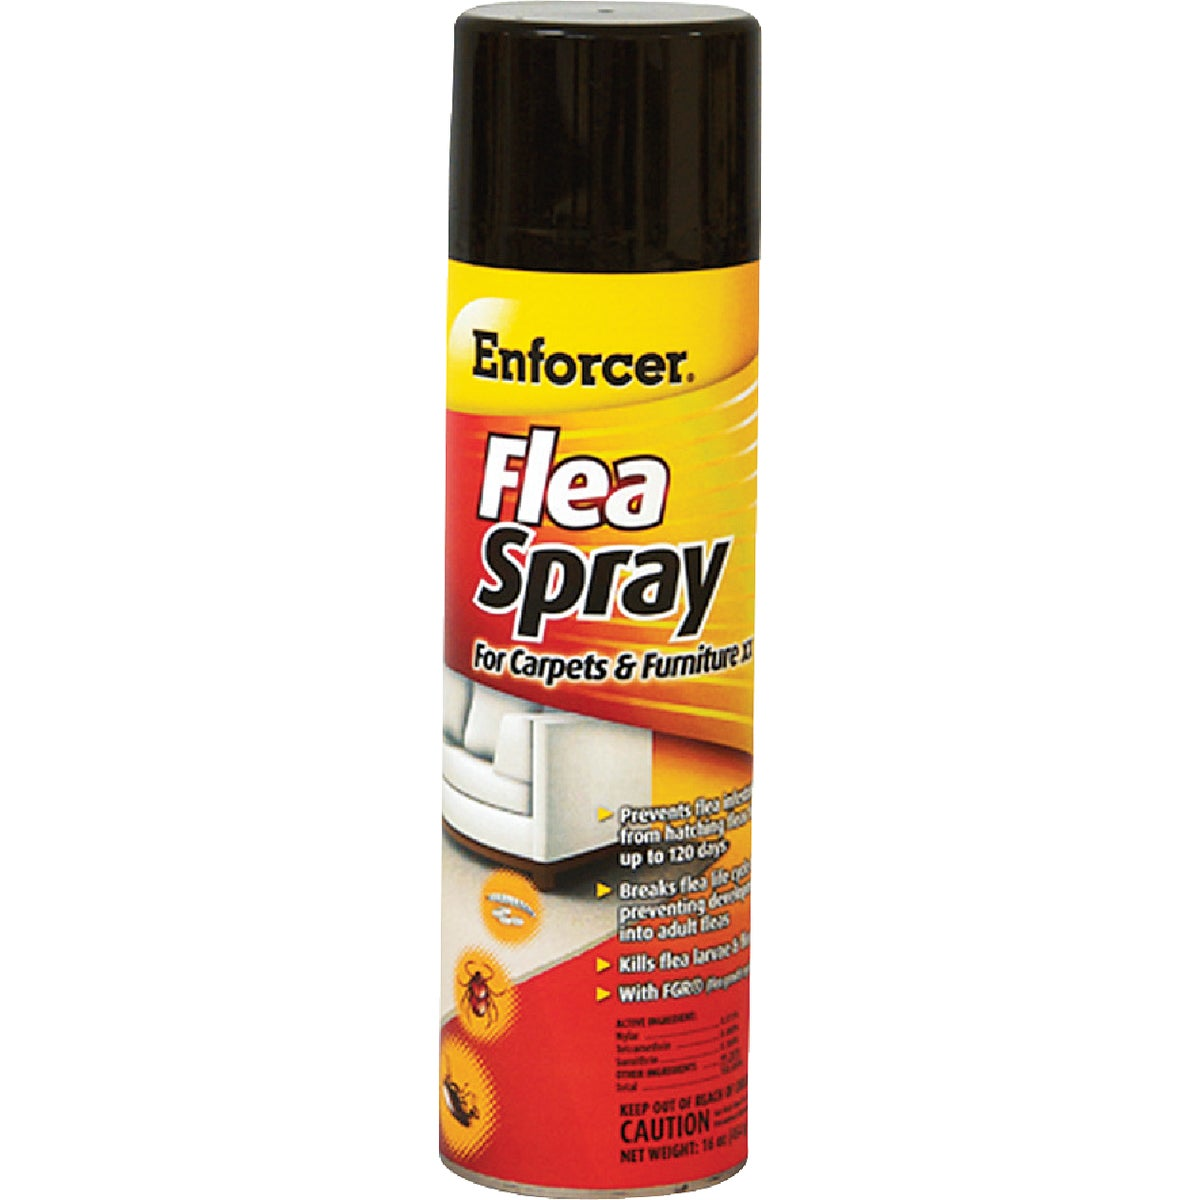 14OZ CARPET FLEA SPRAY - FS14 by Zep Enforcer Inc